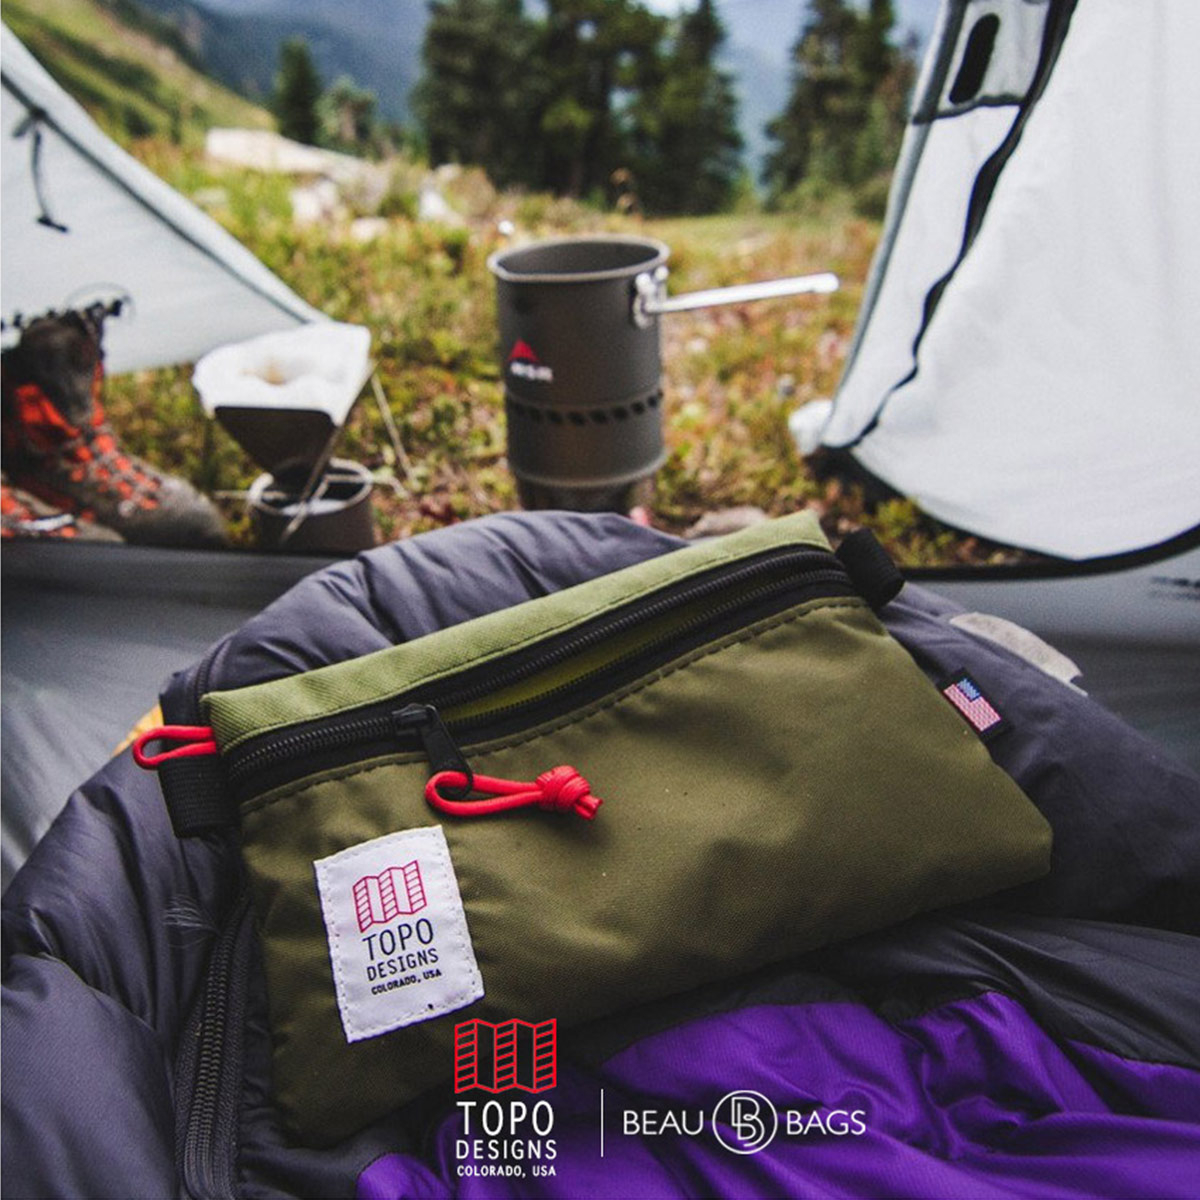 Topo Designs Accessory Bags Olive 3 Sizes, built for durability and organization